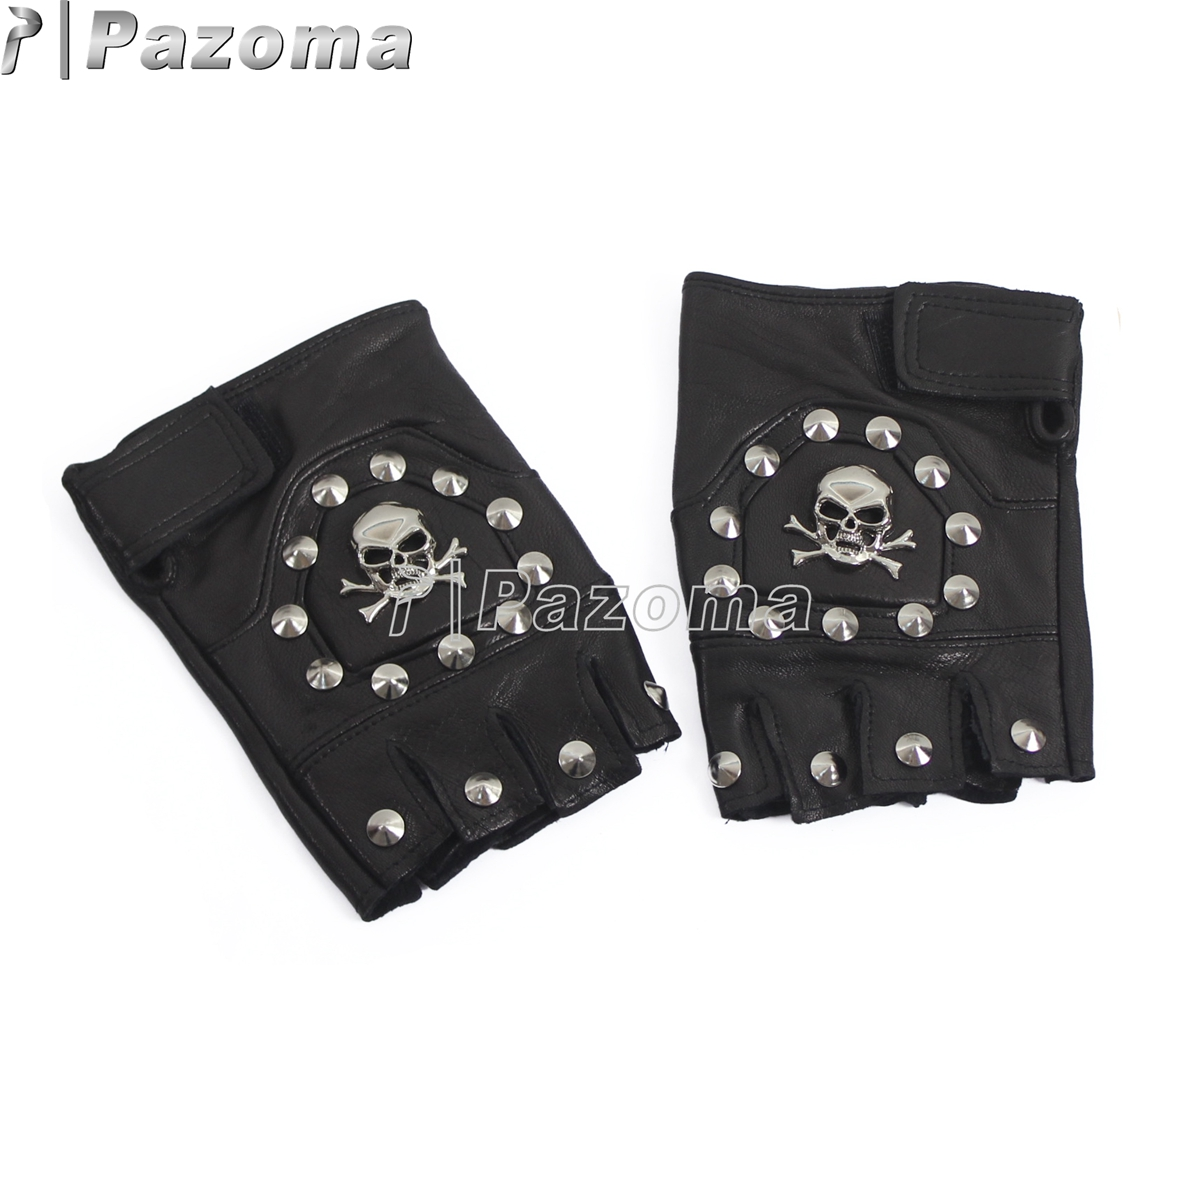 Buy leather bike gloves - Pazoma Uw27 Punk Handmade Gothic Motorcycle Biker Fingerless Leather Pair Glove Skull With Stud Chain